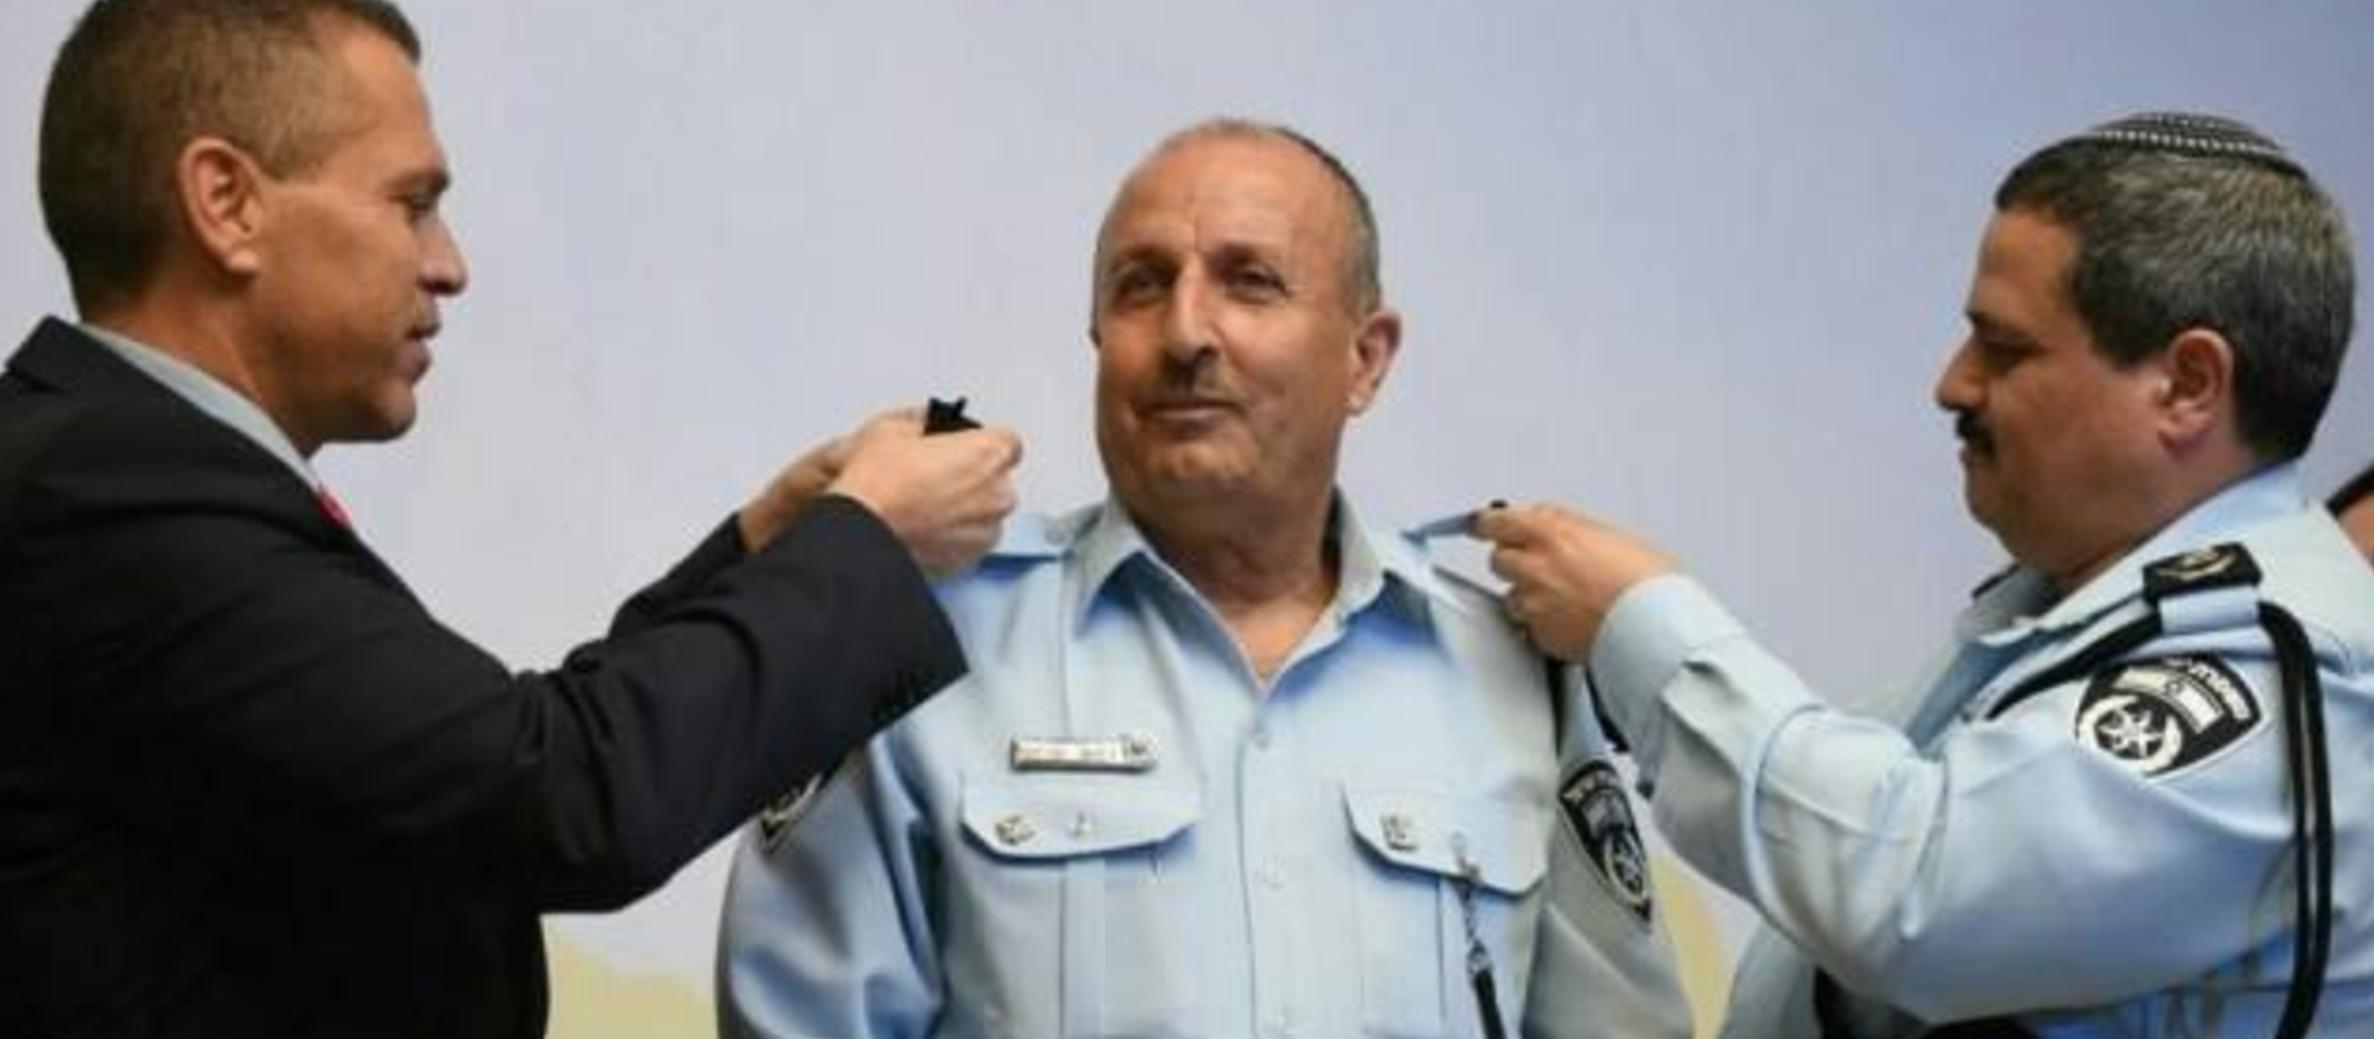 Israel police appoints first Arab deputy commissioner